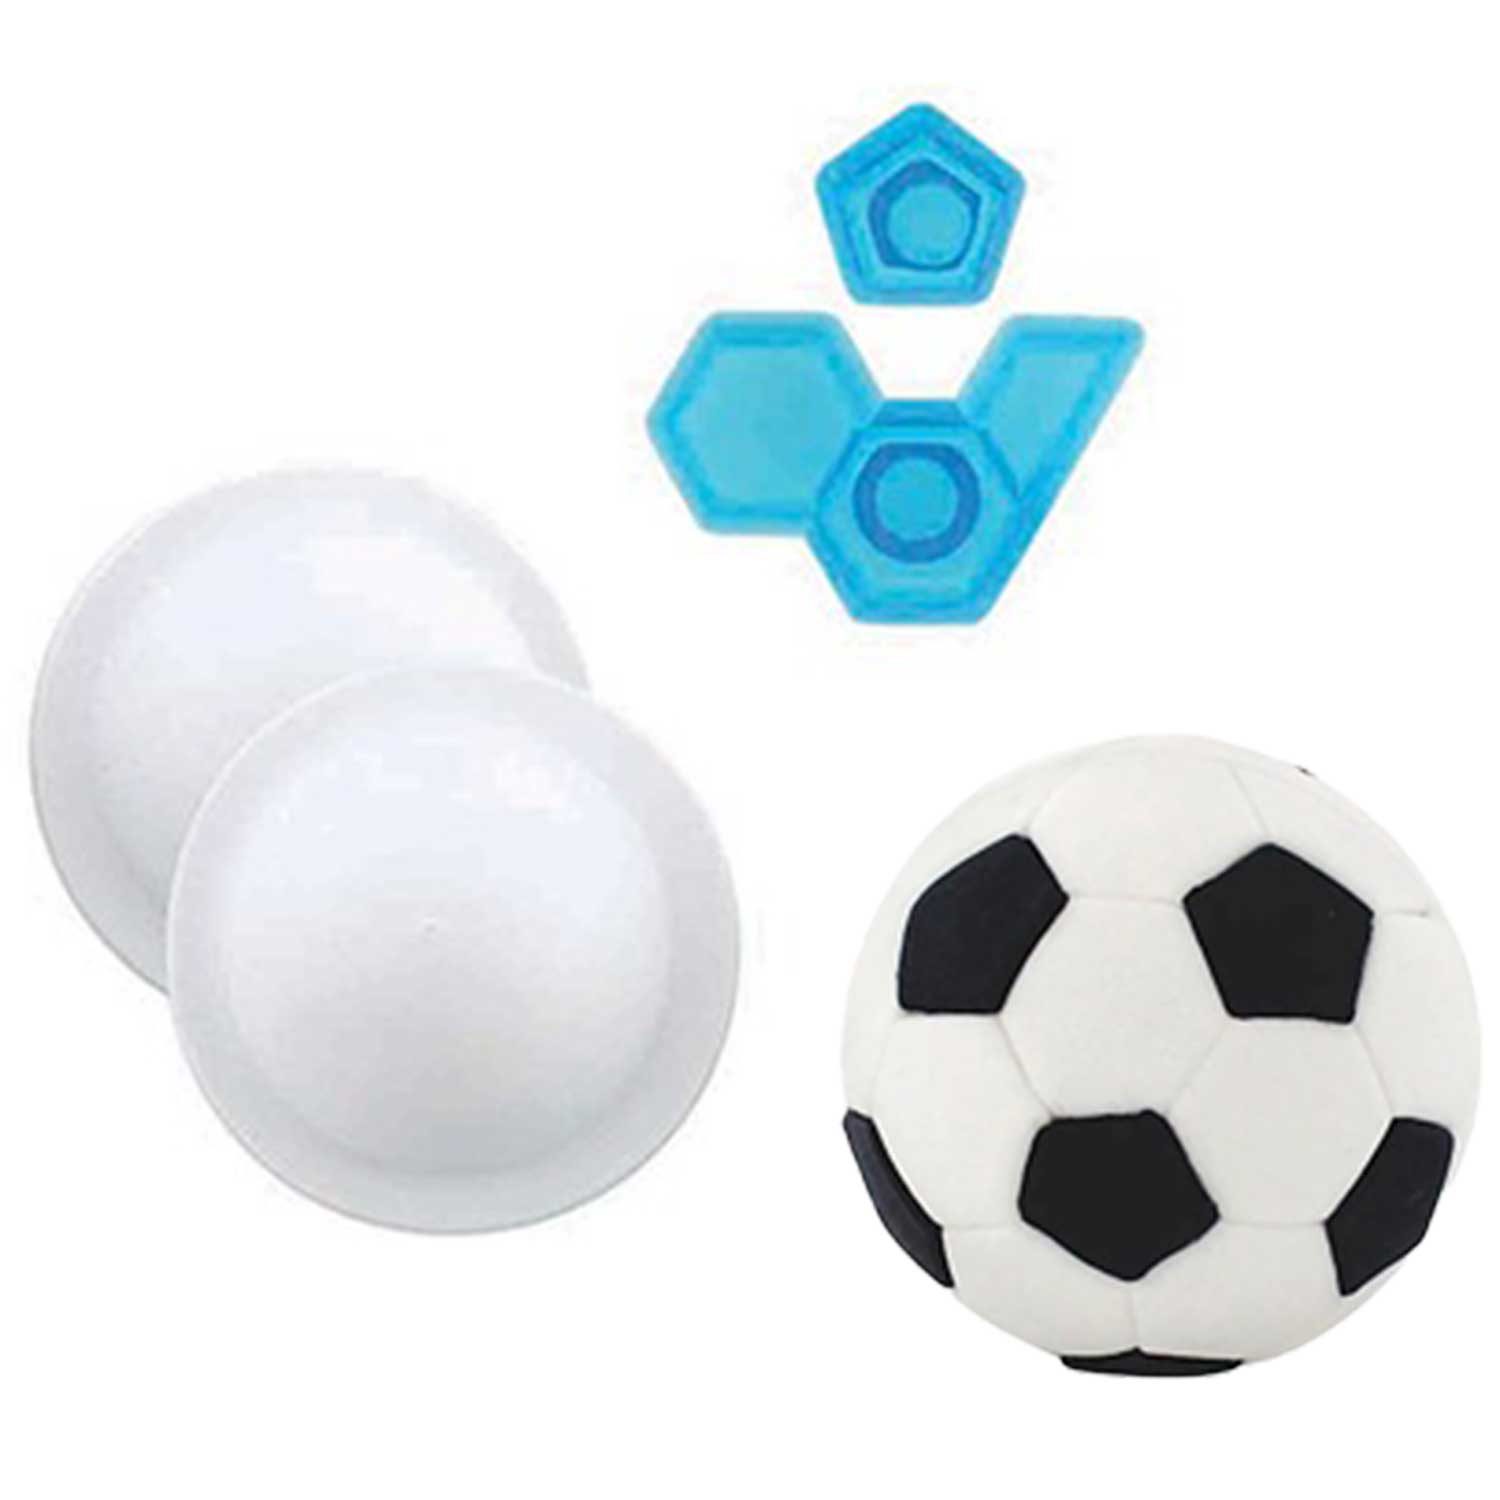 Soccer Ball Cutter Set